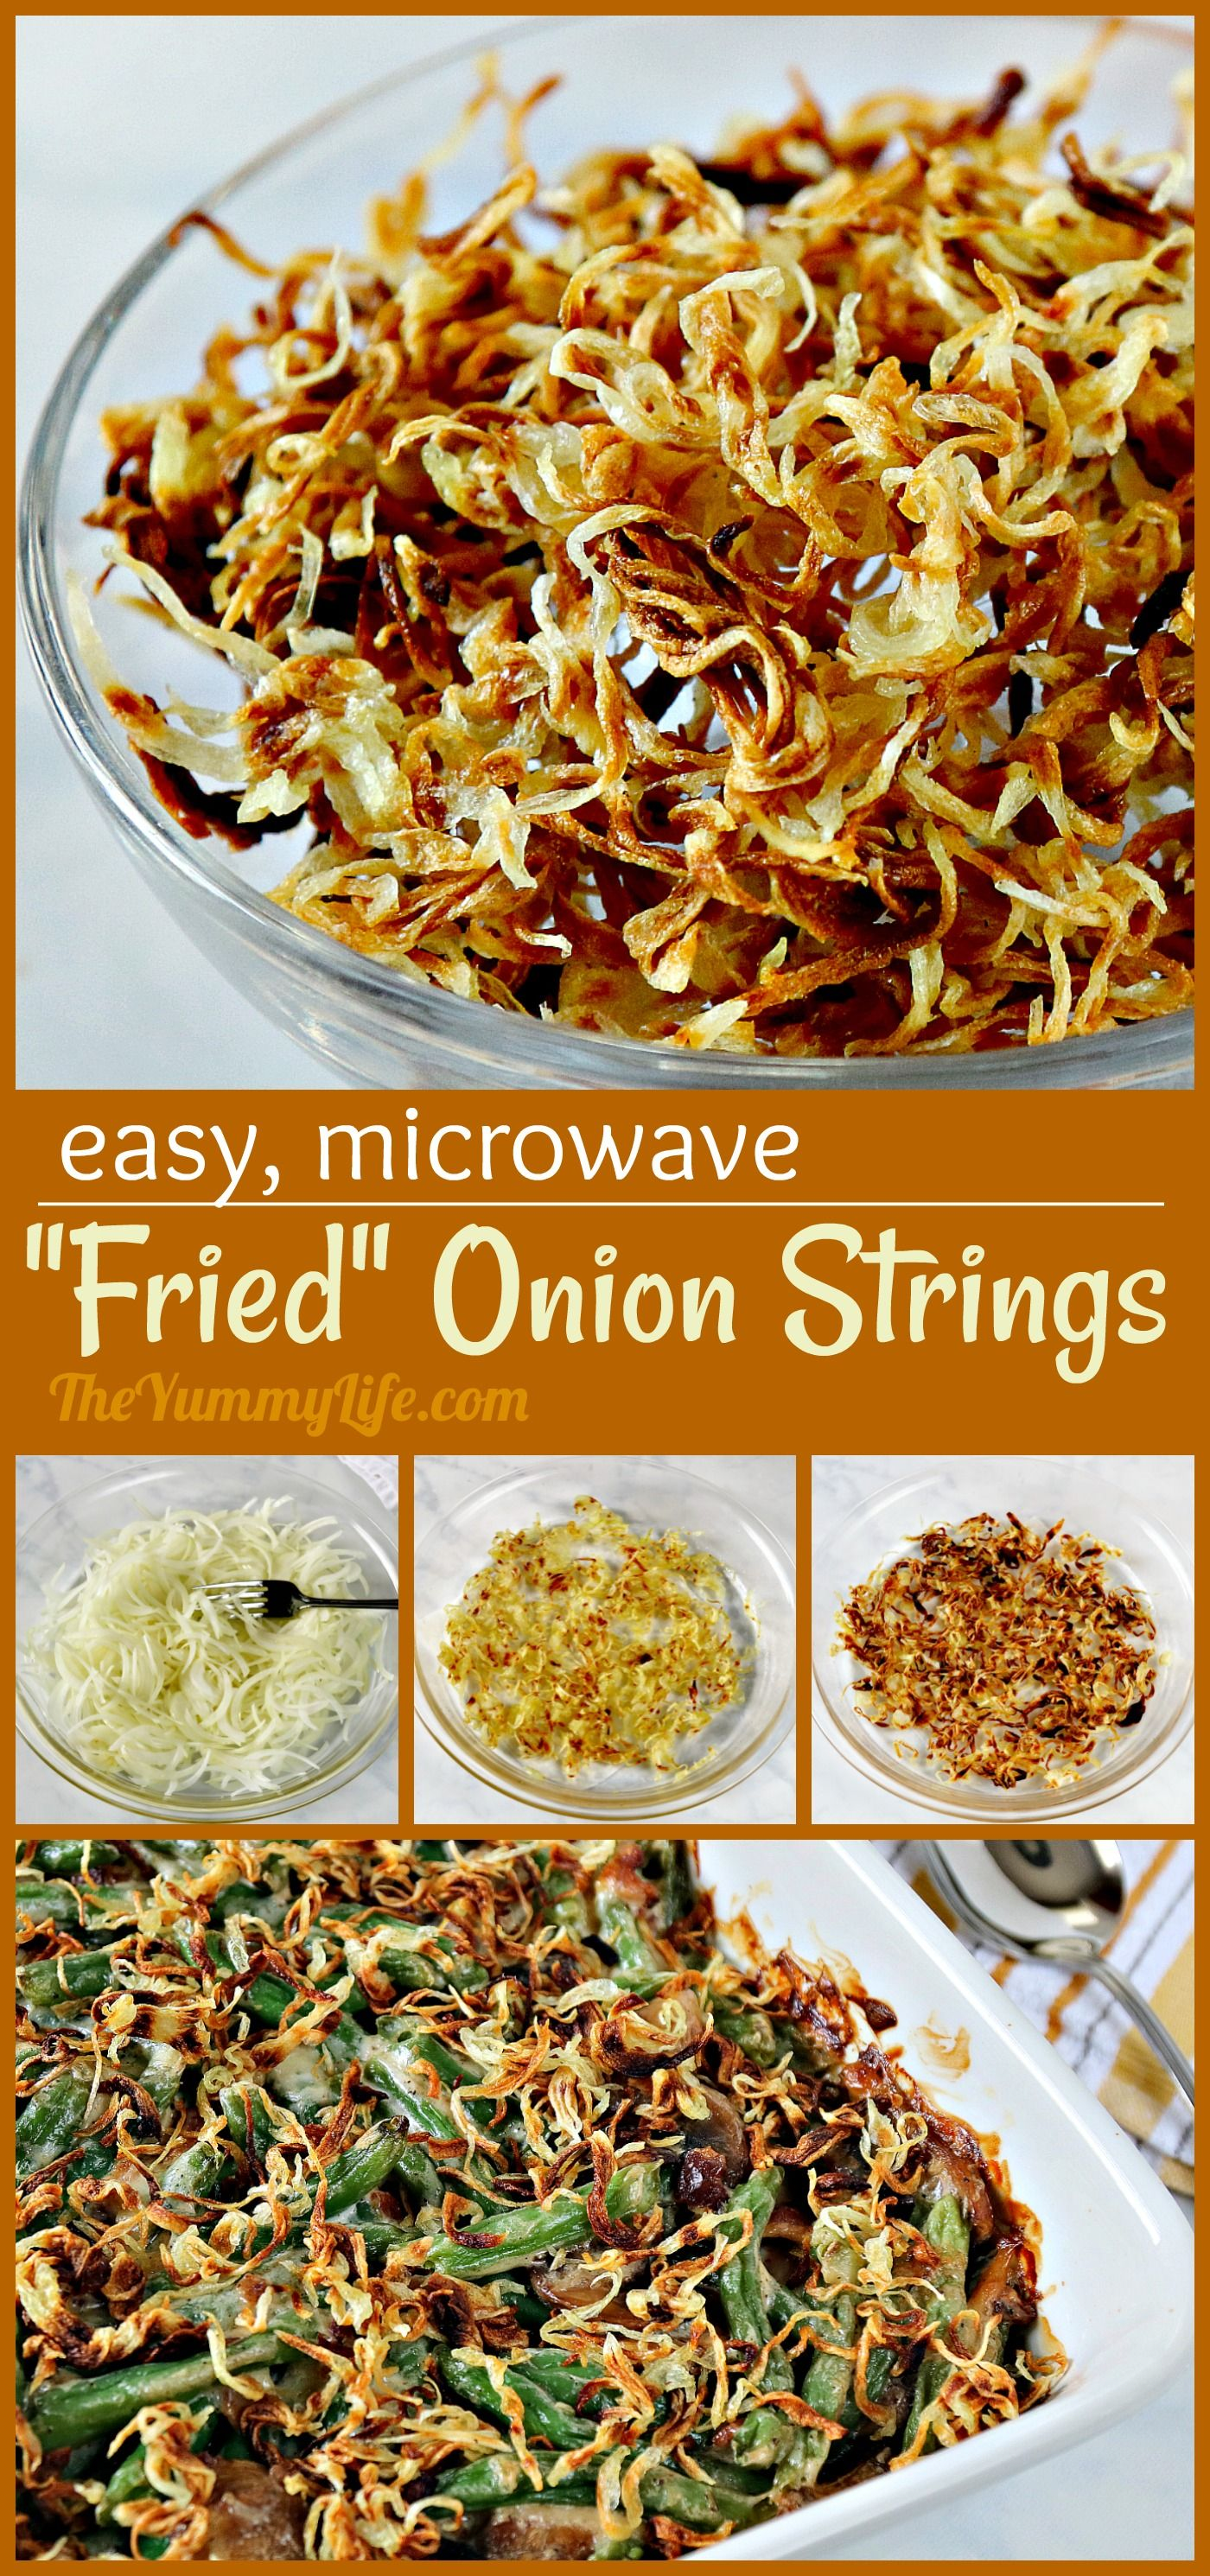 These easy, crispy onions are a snap to make in the microwave. They're a tasty, healthier option for topping green bean casserole. Try them sprinkled over roasted veggies or on sandwiches for some added crunch and flavor. #OnionStrings #FriedOnions #Topping #GreenBeanCasserole #Biryani #Thanksgiving